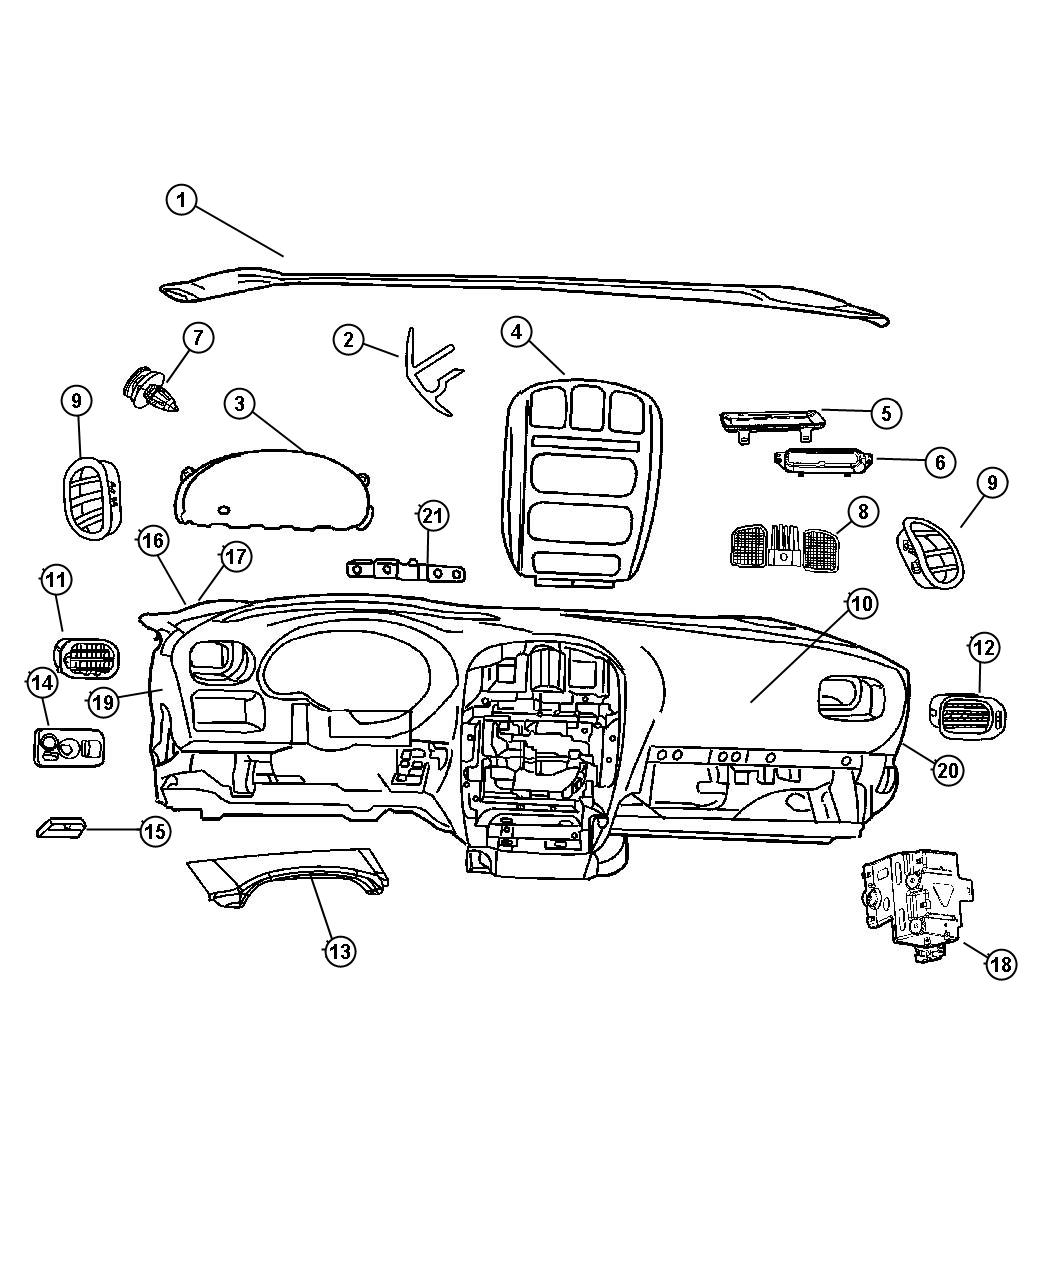 Dodge Grand Caravan Sxt 3 8l V6 Used For Switch And